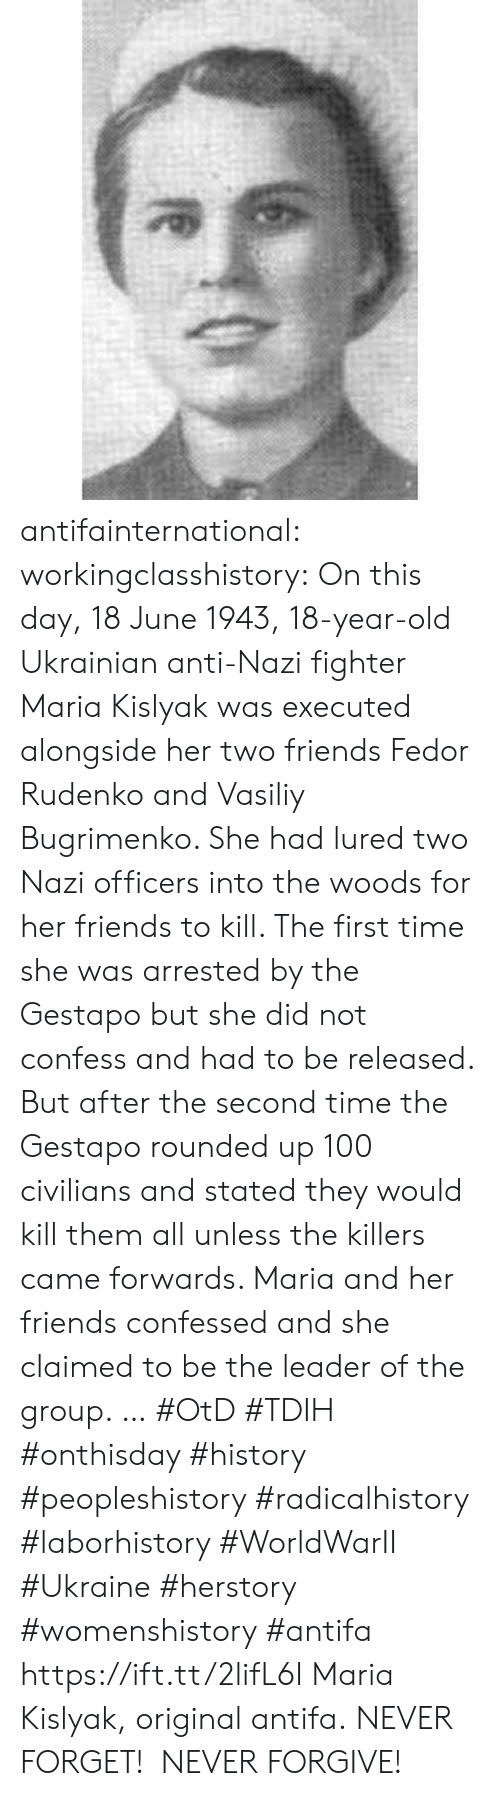 Anaconda, Friends, and Tumblr: antifainternational: workingclasshistory: On this day, 18 June 1943, 18-year-old Ukrainian anti-Nazi fighter Maria Kislyak was executed alongside her two friends Fedor Rudenko and Vasiliy Bugrimenko. She had lured two Nazi officers into the woods for her friends to kill. The first time she was arrested by the Gestapo but she did not confess and had to be released. But after the second time the Gestapo rounded up 100 civilians and stated they would kill them all unless the killers came forwards. Maria and her friends confessed and she claimed to be the leader of the group.  … #OtD #TDIH #onthisday #history #peopleshistory #radicalhistory #laborhistory #WorldWarII #Ukraine #herstory #womenshistory #antifa https://ift.tt/2lifL6I Maria Kislyak, original antifa. NEVER FORGET! NEVER FORGIVE!